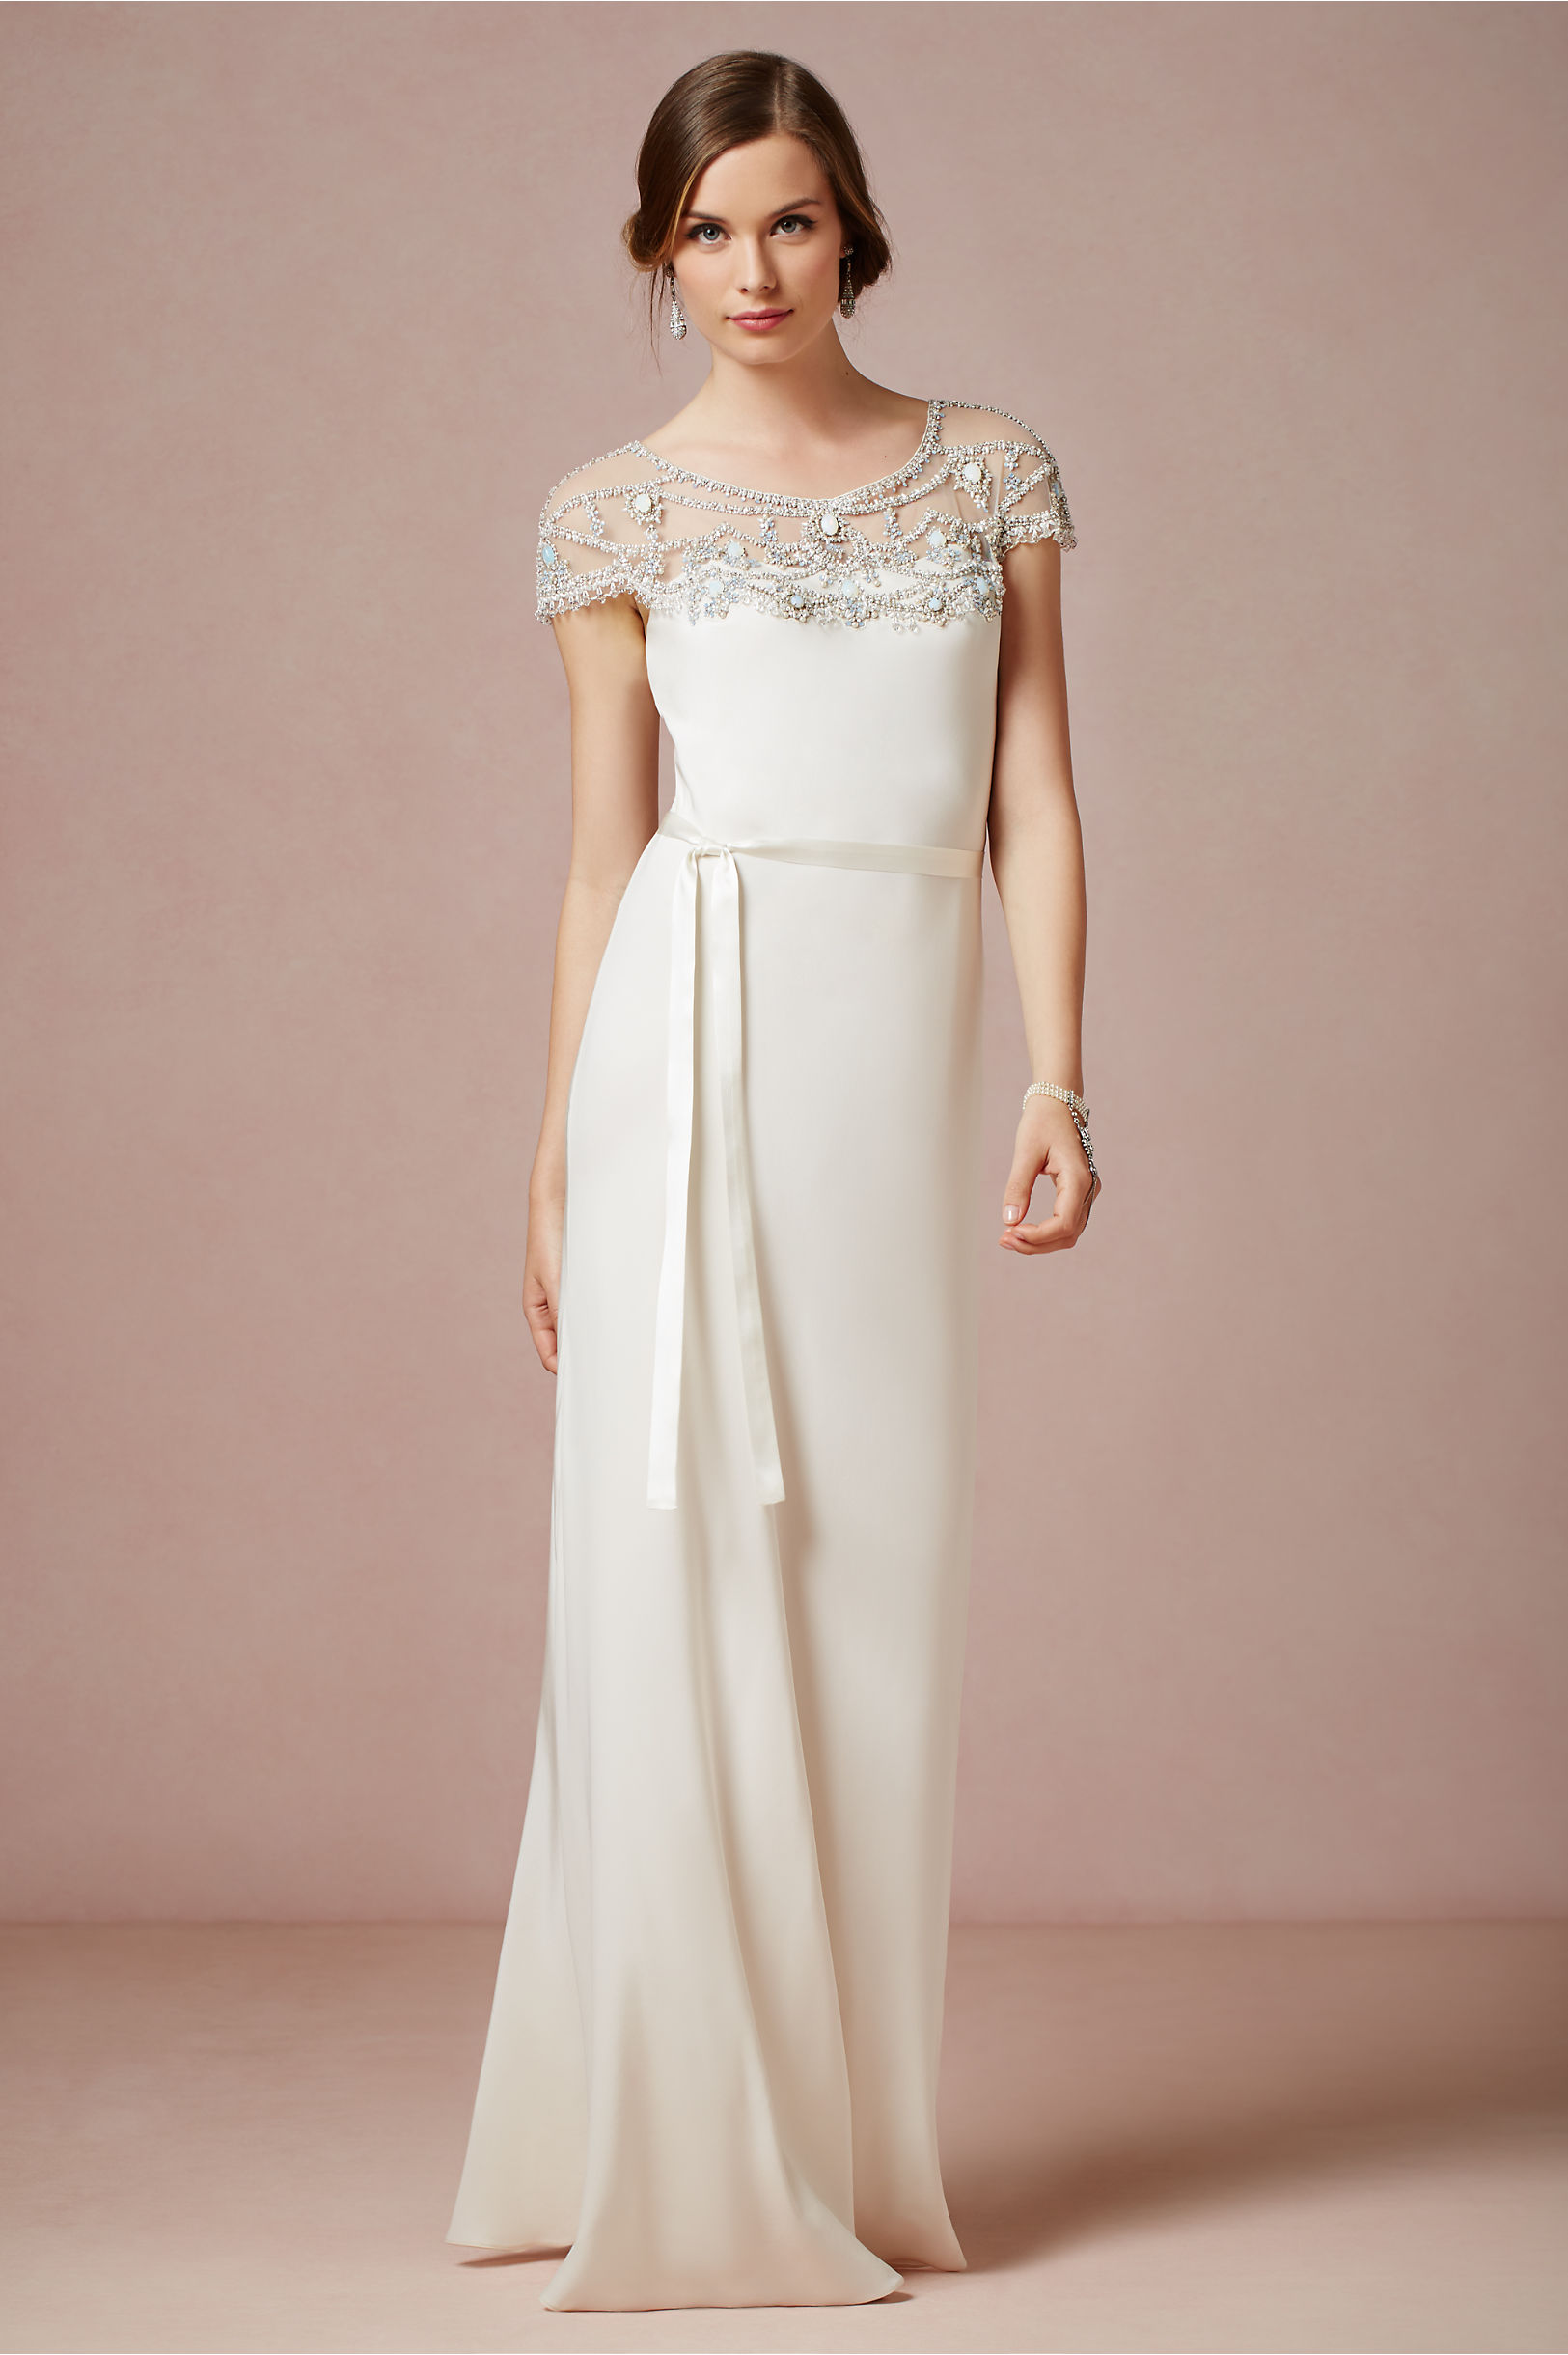 Ranna Gill Ivory Harlow Gown